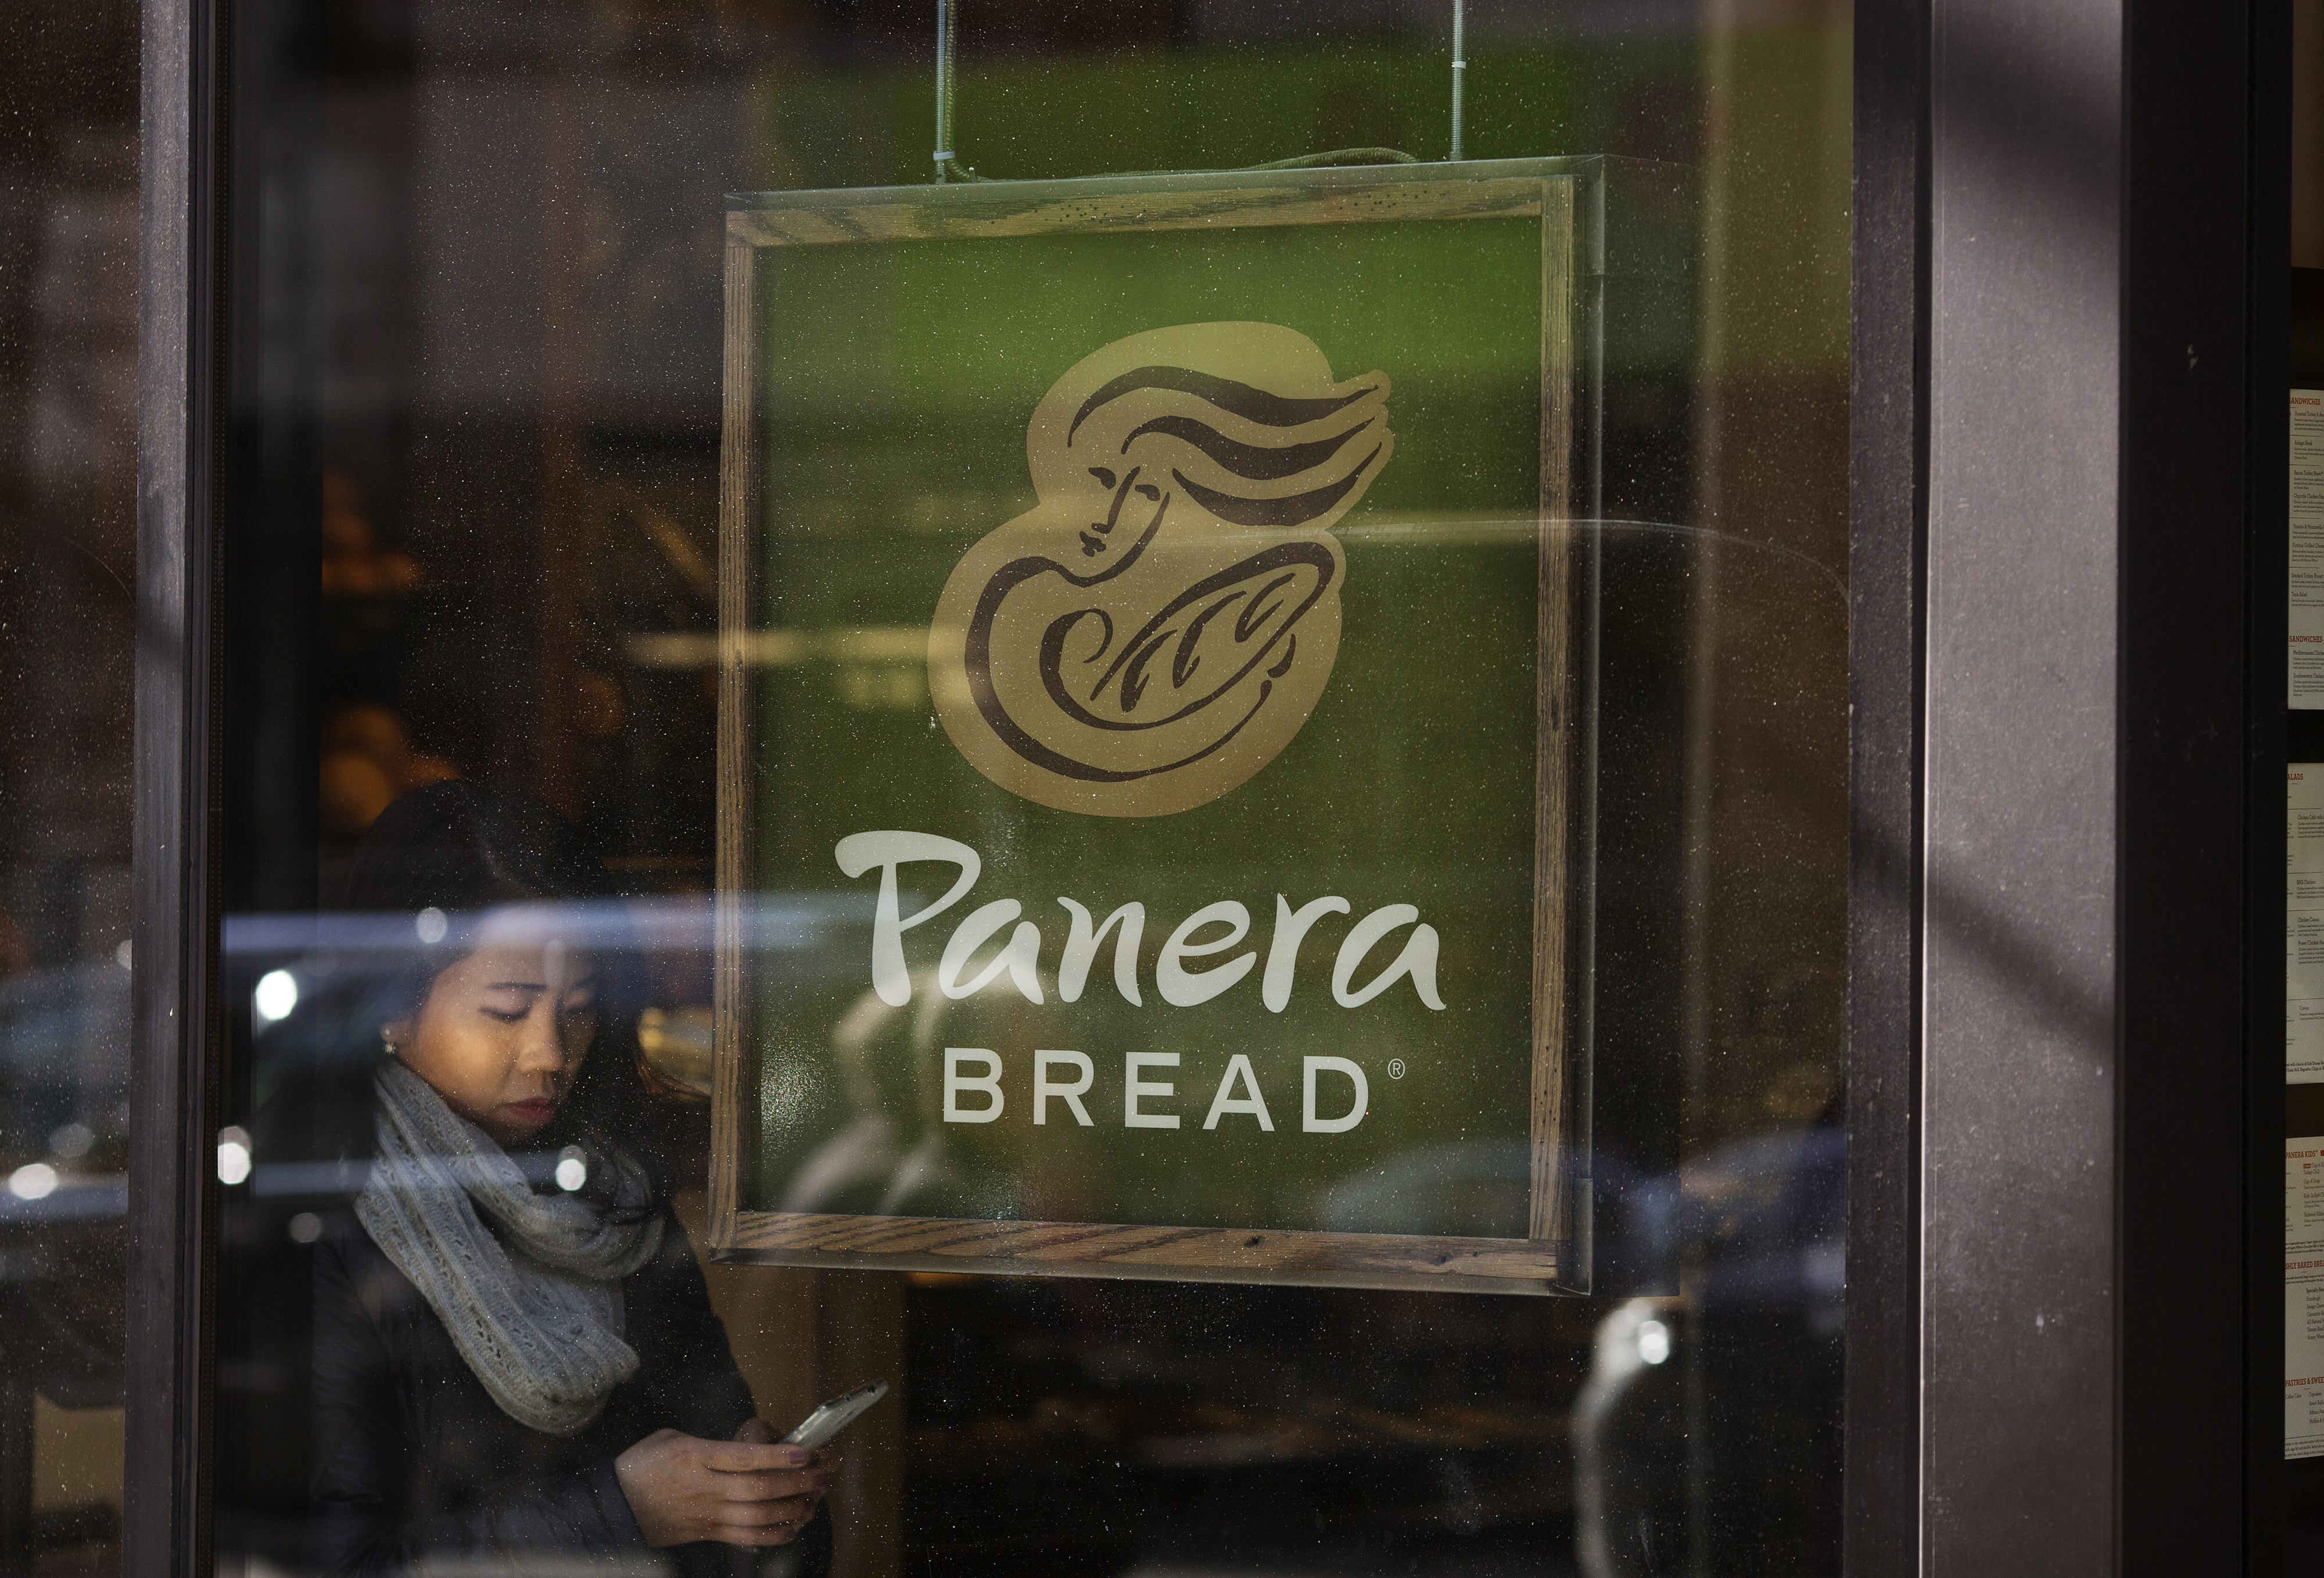 Pedestrians walk by a Panera Bread restaurant in Midtown Manhattan, New York, NY, Tuesday, February 10, 2015.